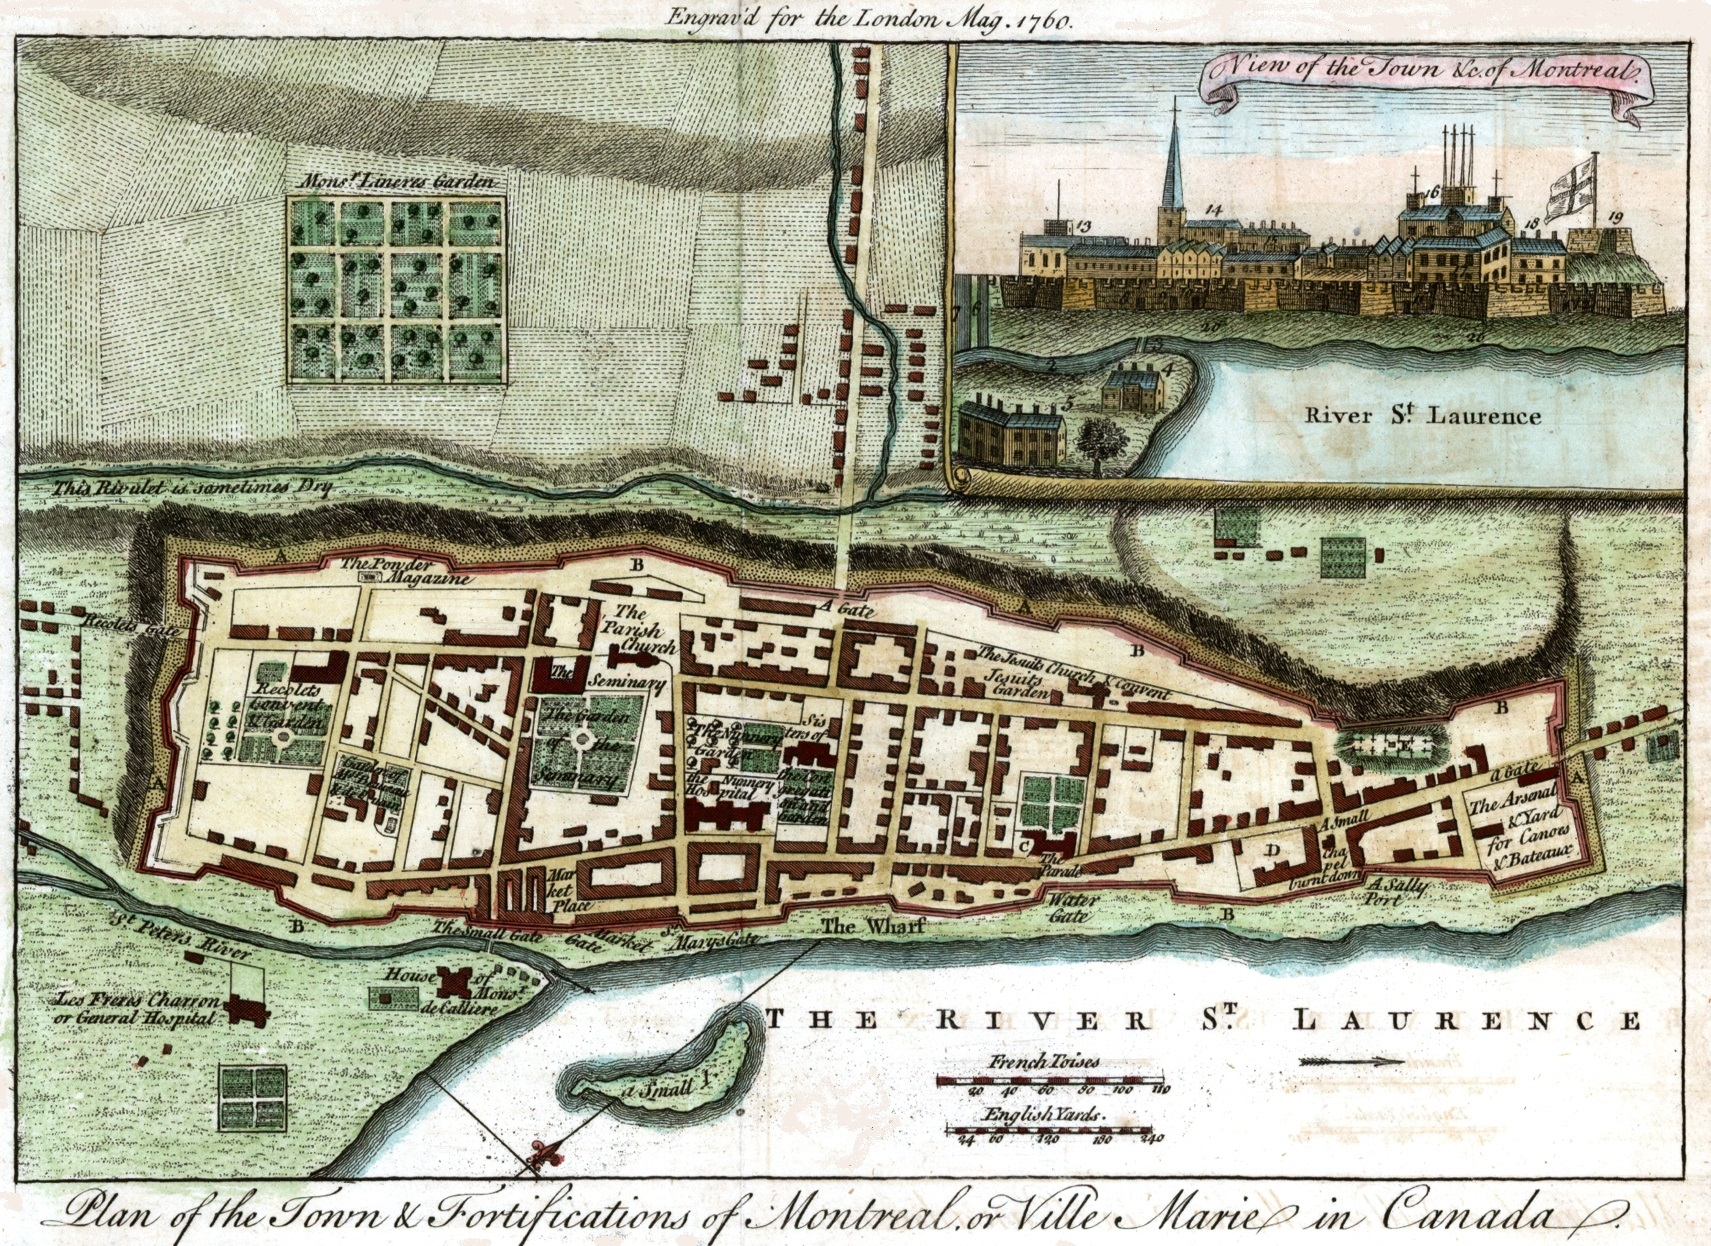 File:Town and Fortification of Montreal, London Mag.,1760.jpg